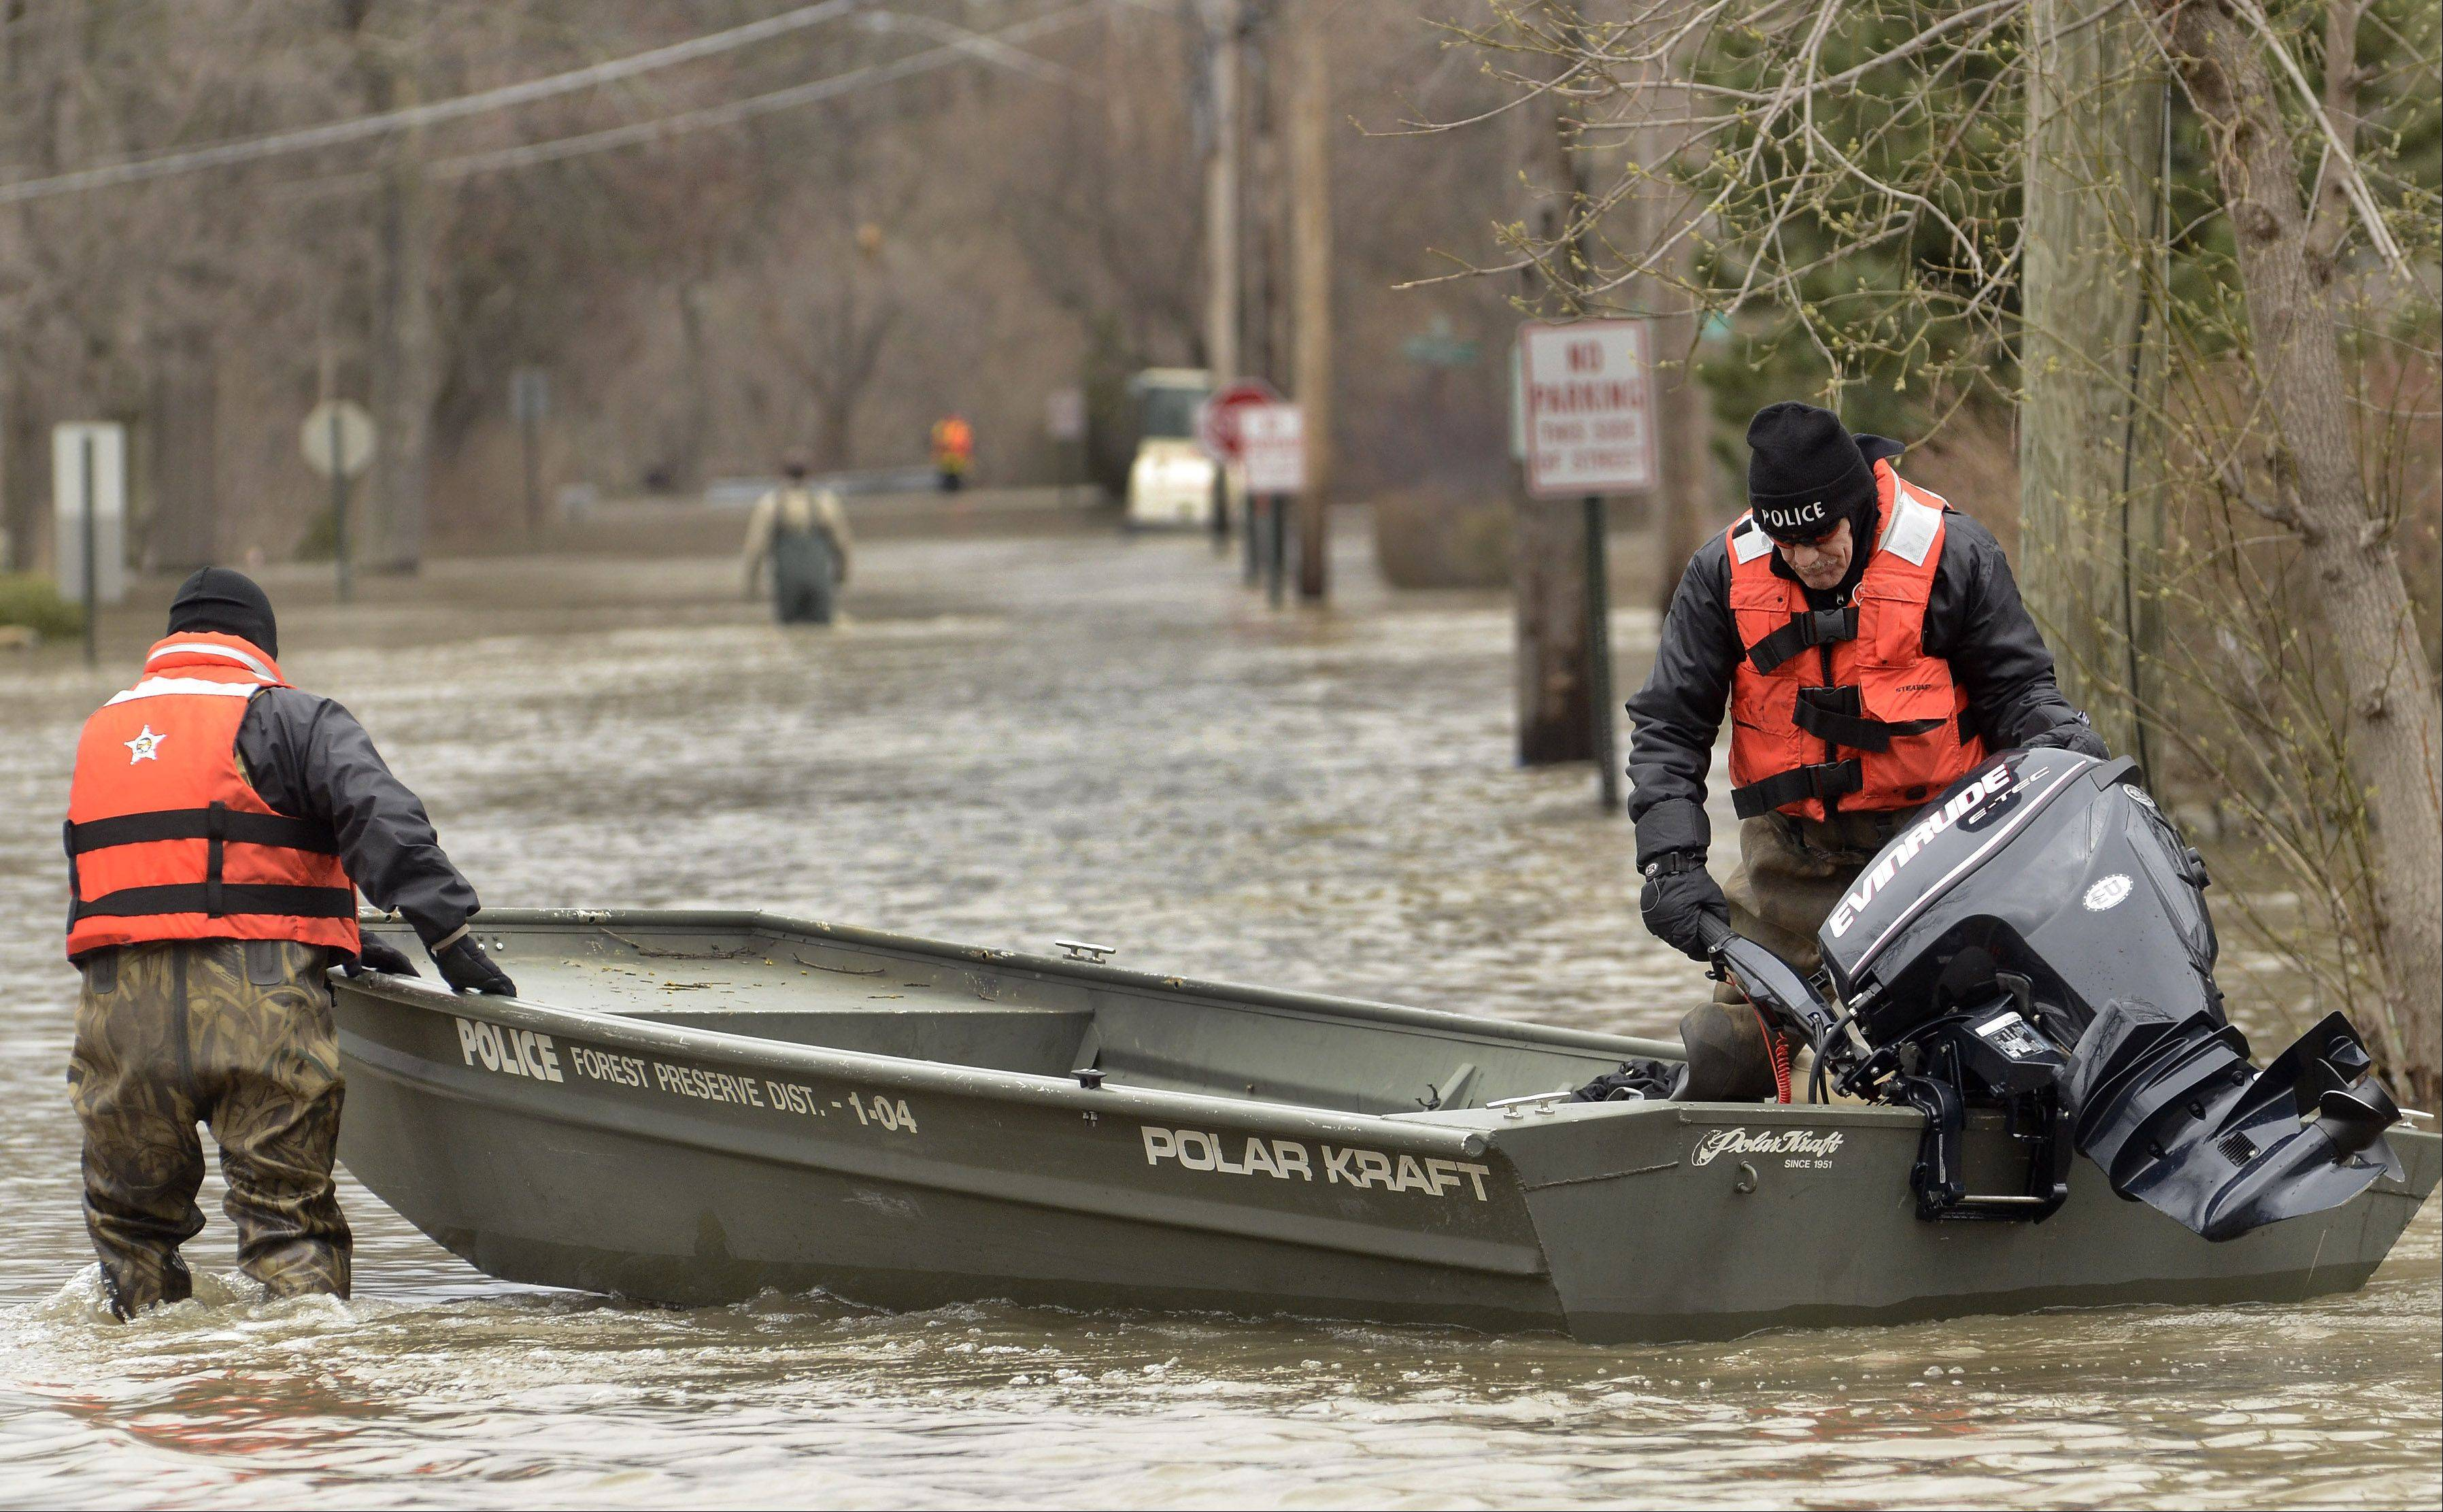 Cook County Forest Preserve Police use a boat to navigate Hawthorne Lane in Des Plaines.